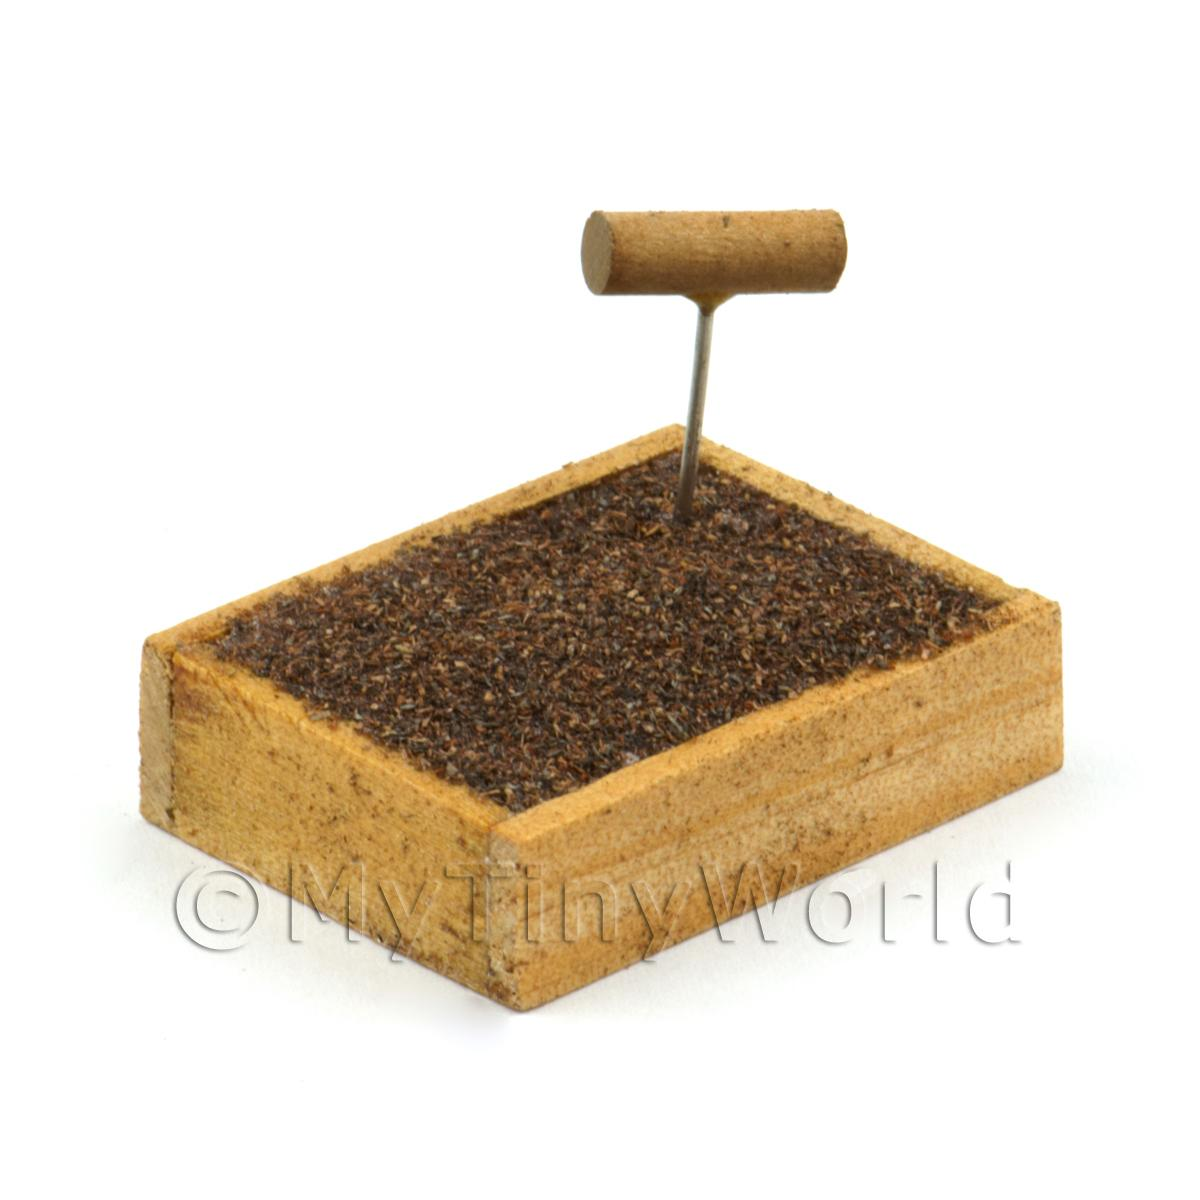 Miniature Garden Wooden Crate With Compost And Seeding Tool